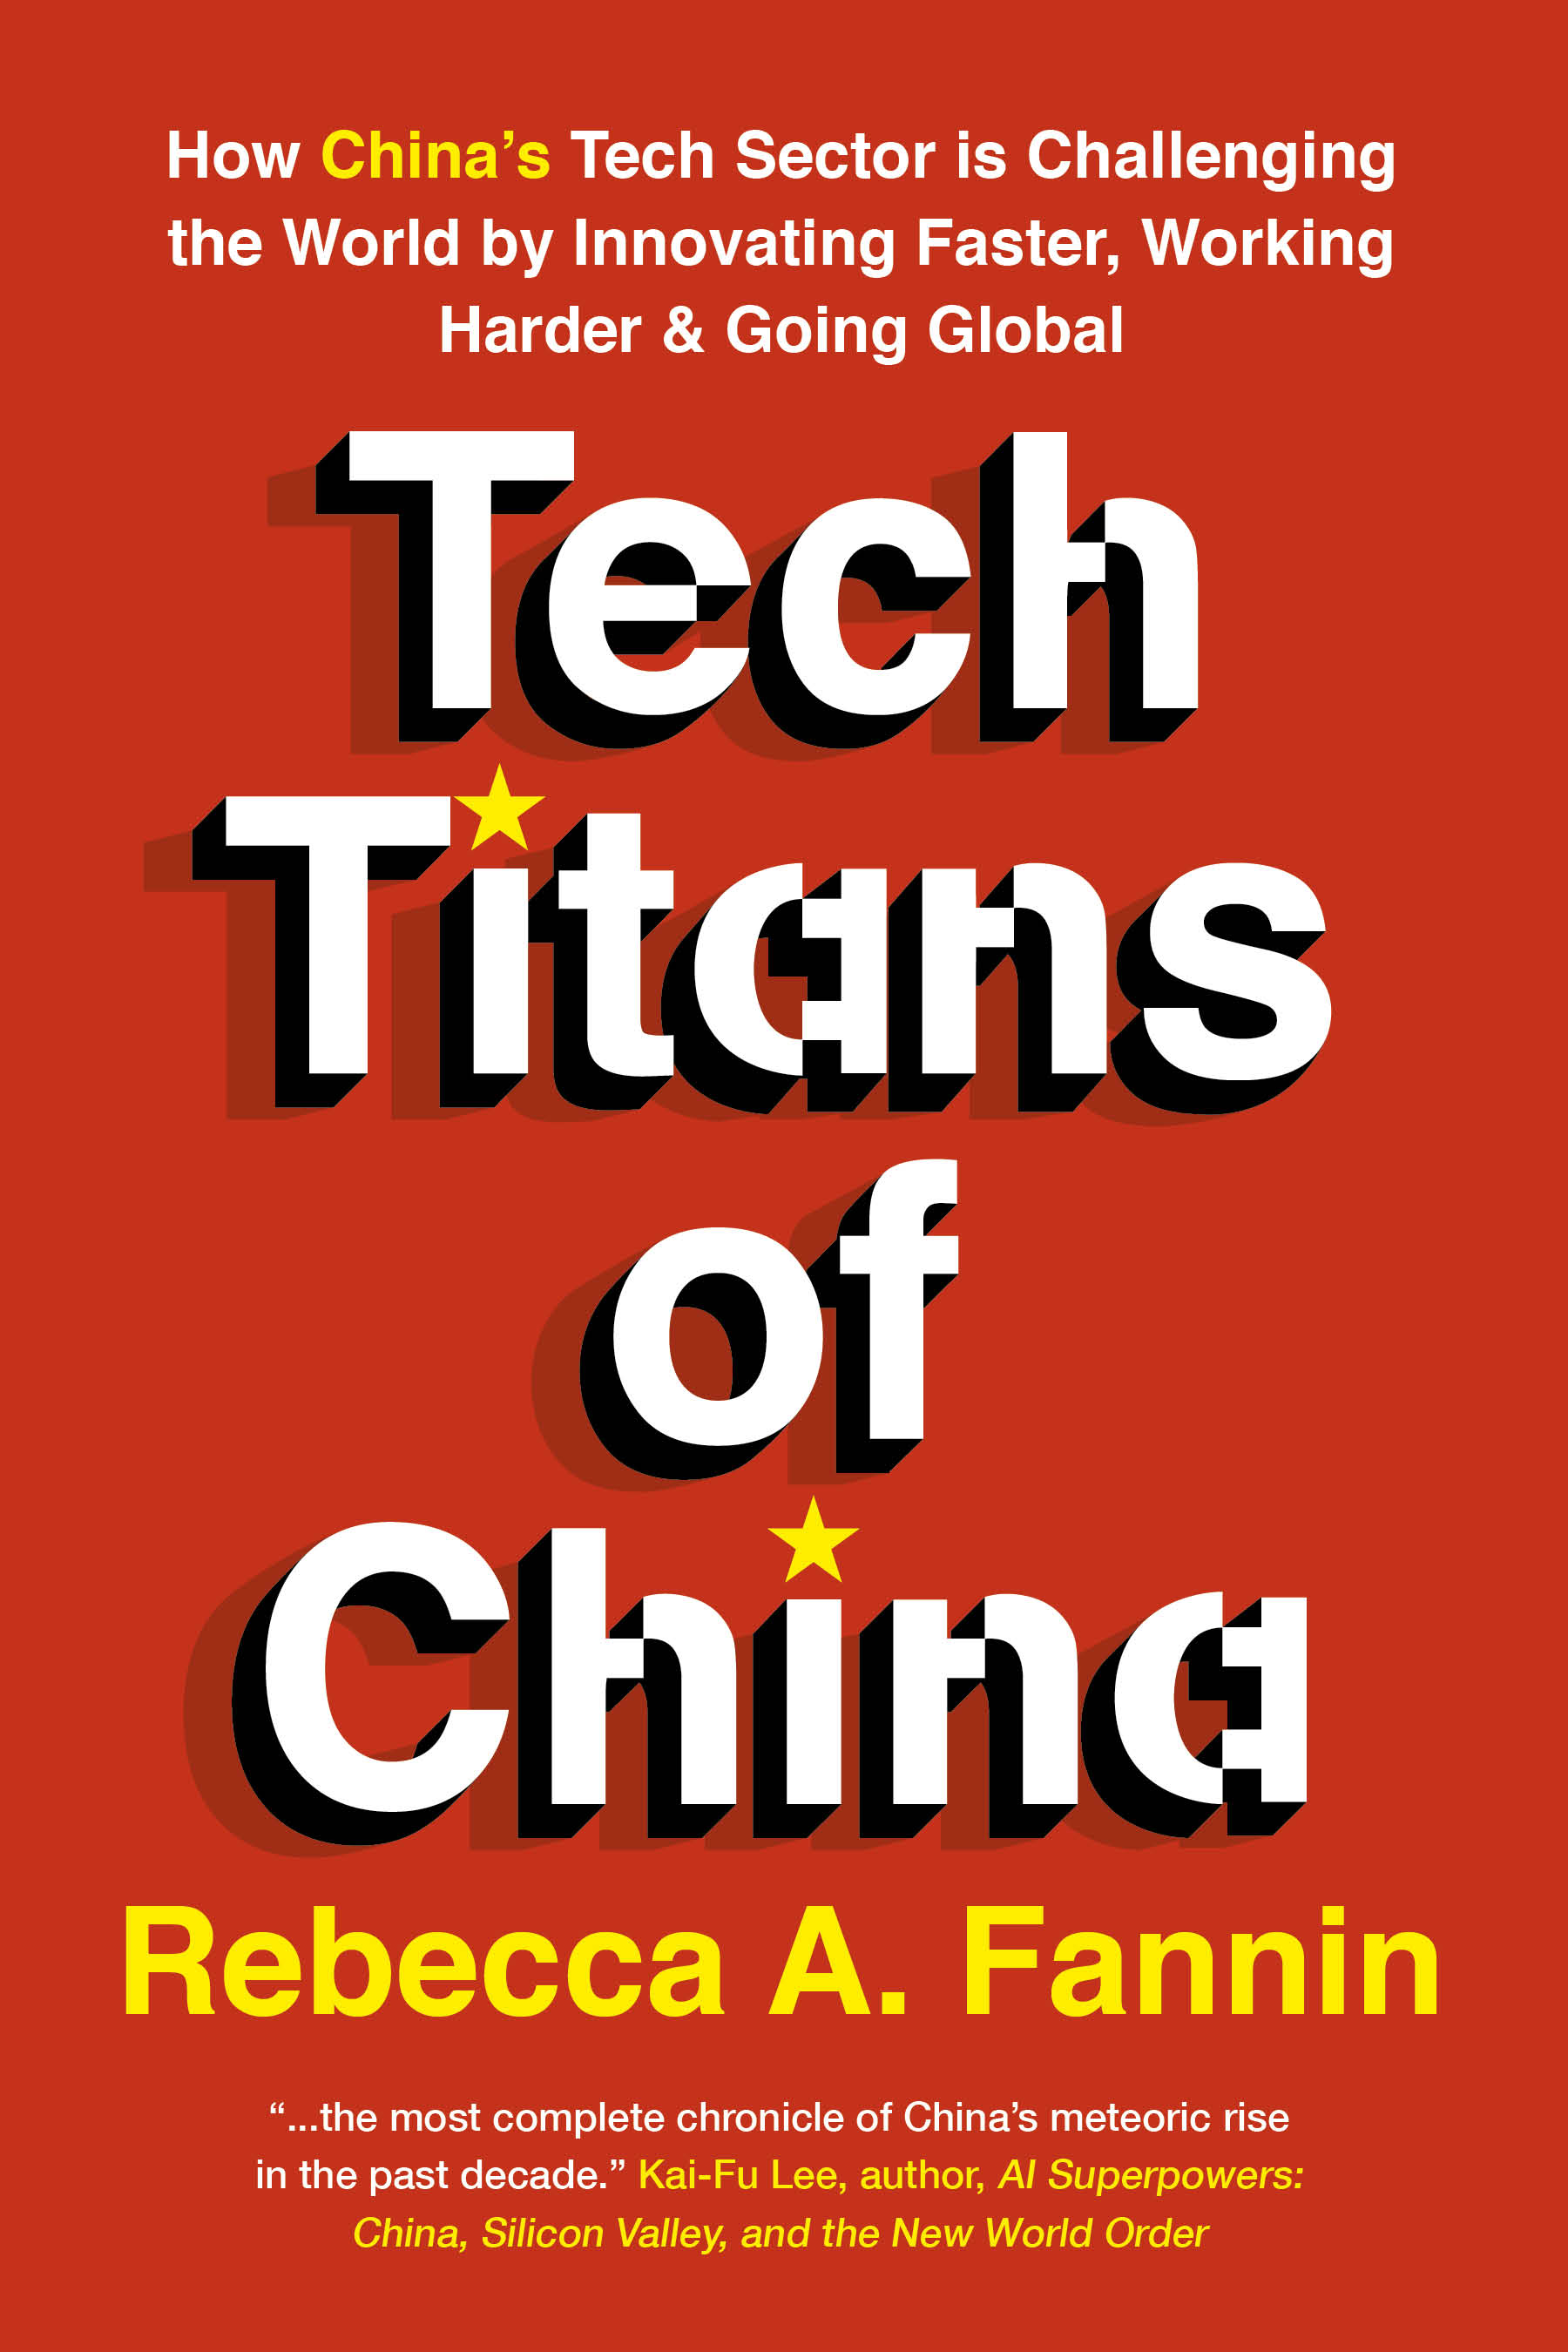 Tech titans of China.jpg